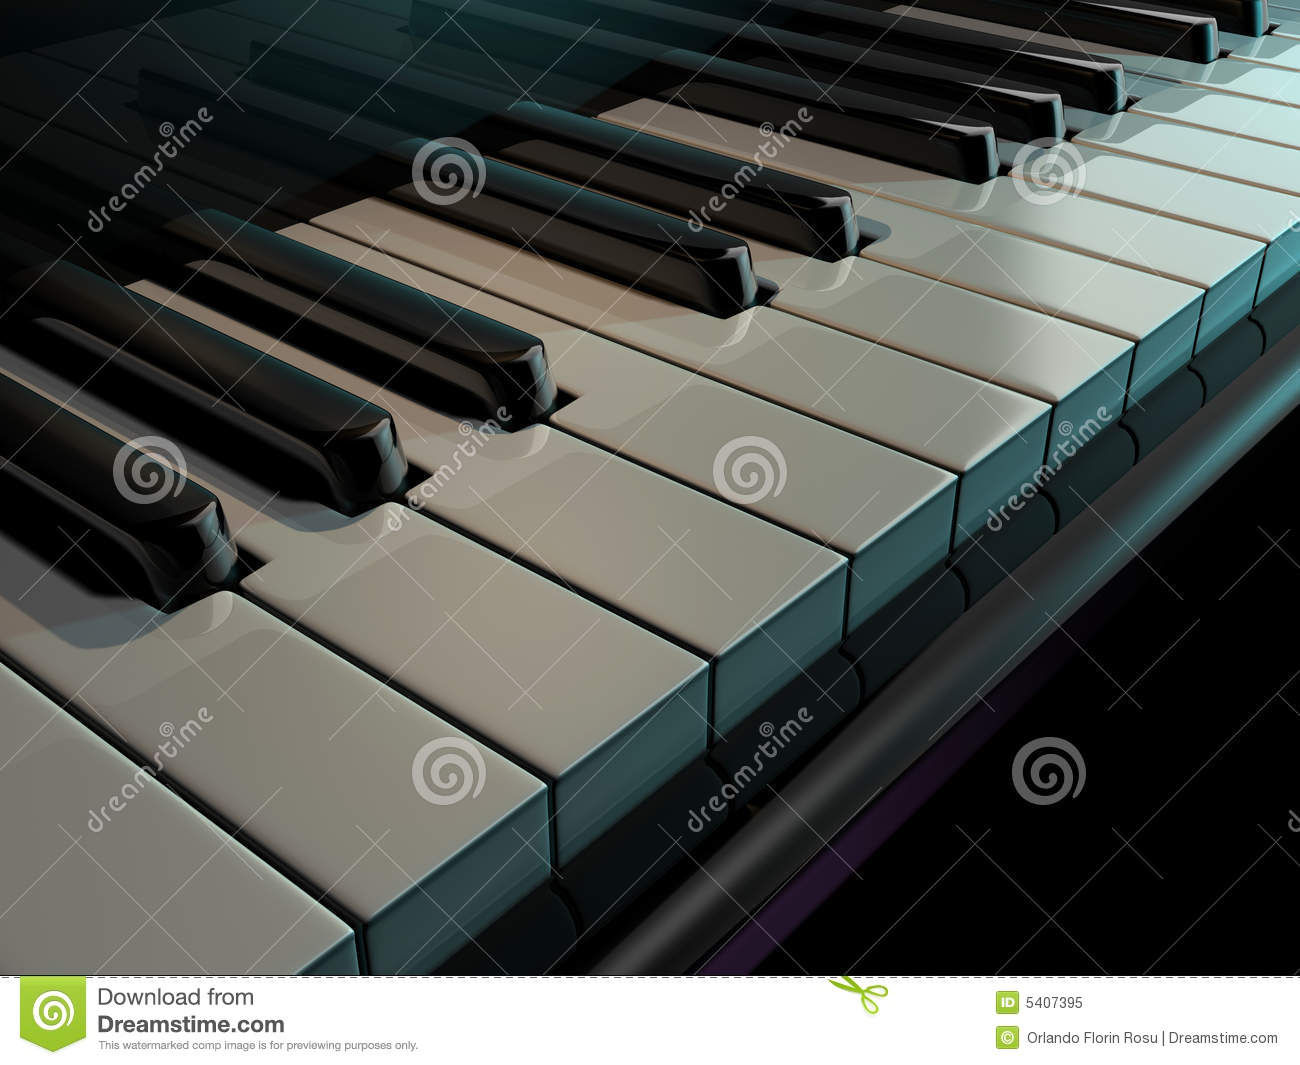 Chaves do piano